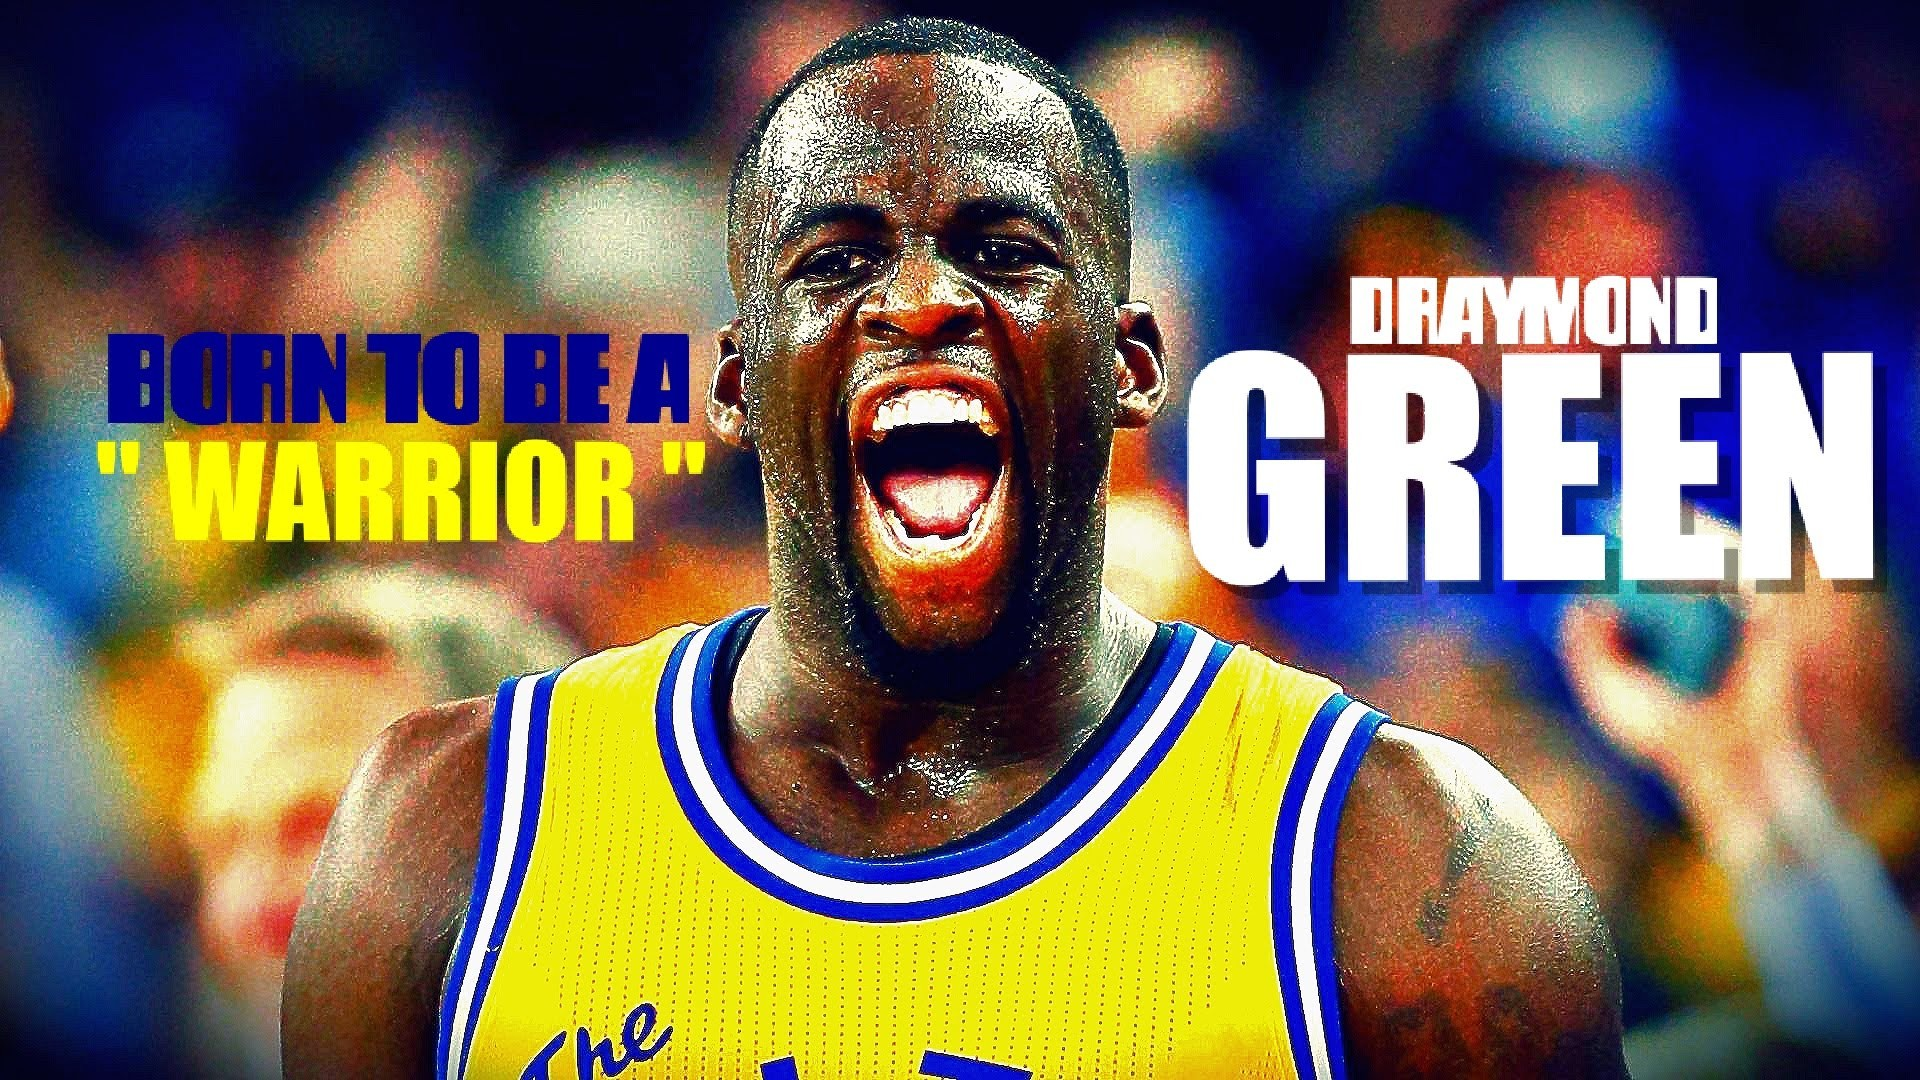 1920x1080 Draymond Green - Born To Be A Warrior á´´á´° | 2015-2016 Highlights - YouTube